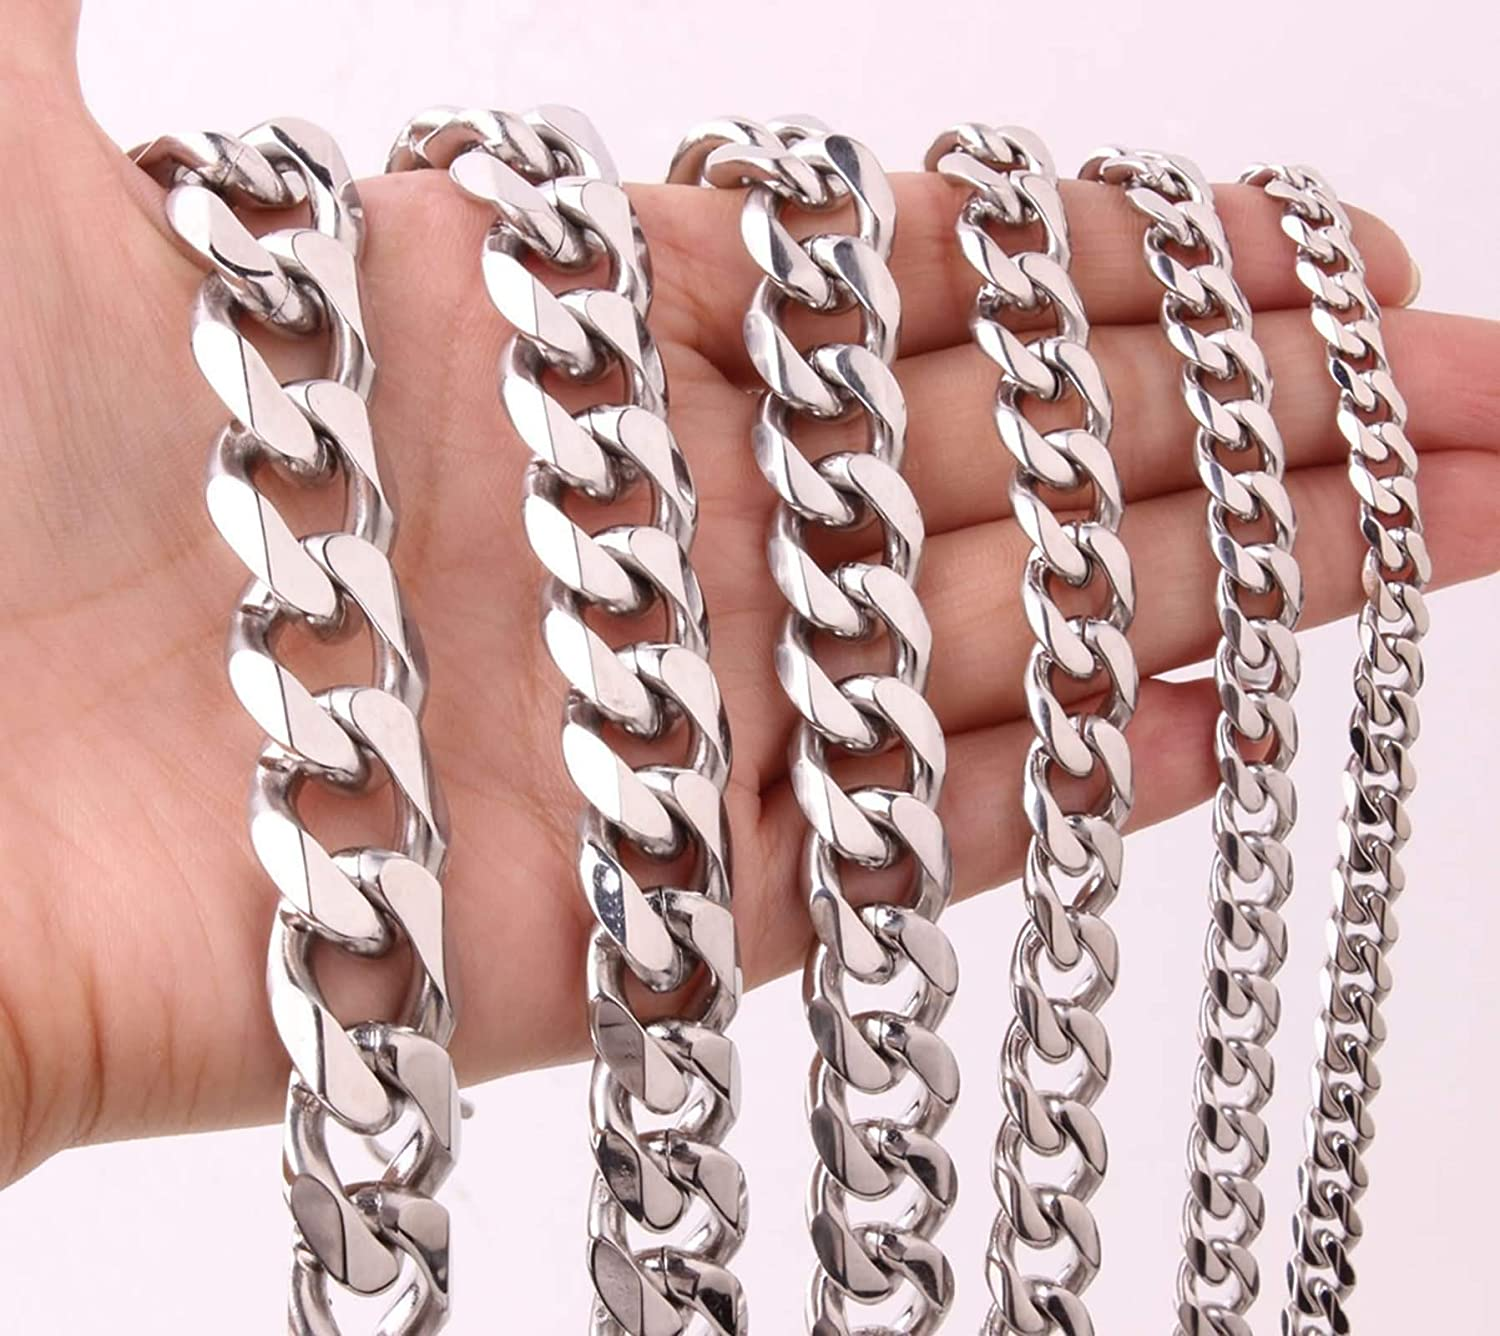 Gnzoe Stainless Steel Chain Necklace for Men Silver Curb Chain for Men Necklace 24IN